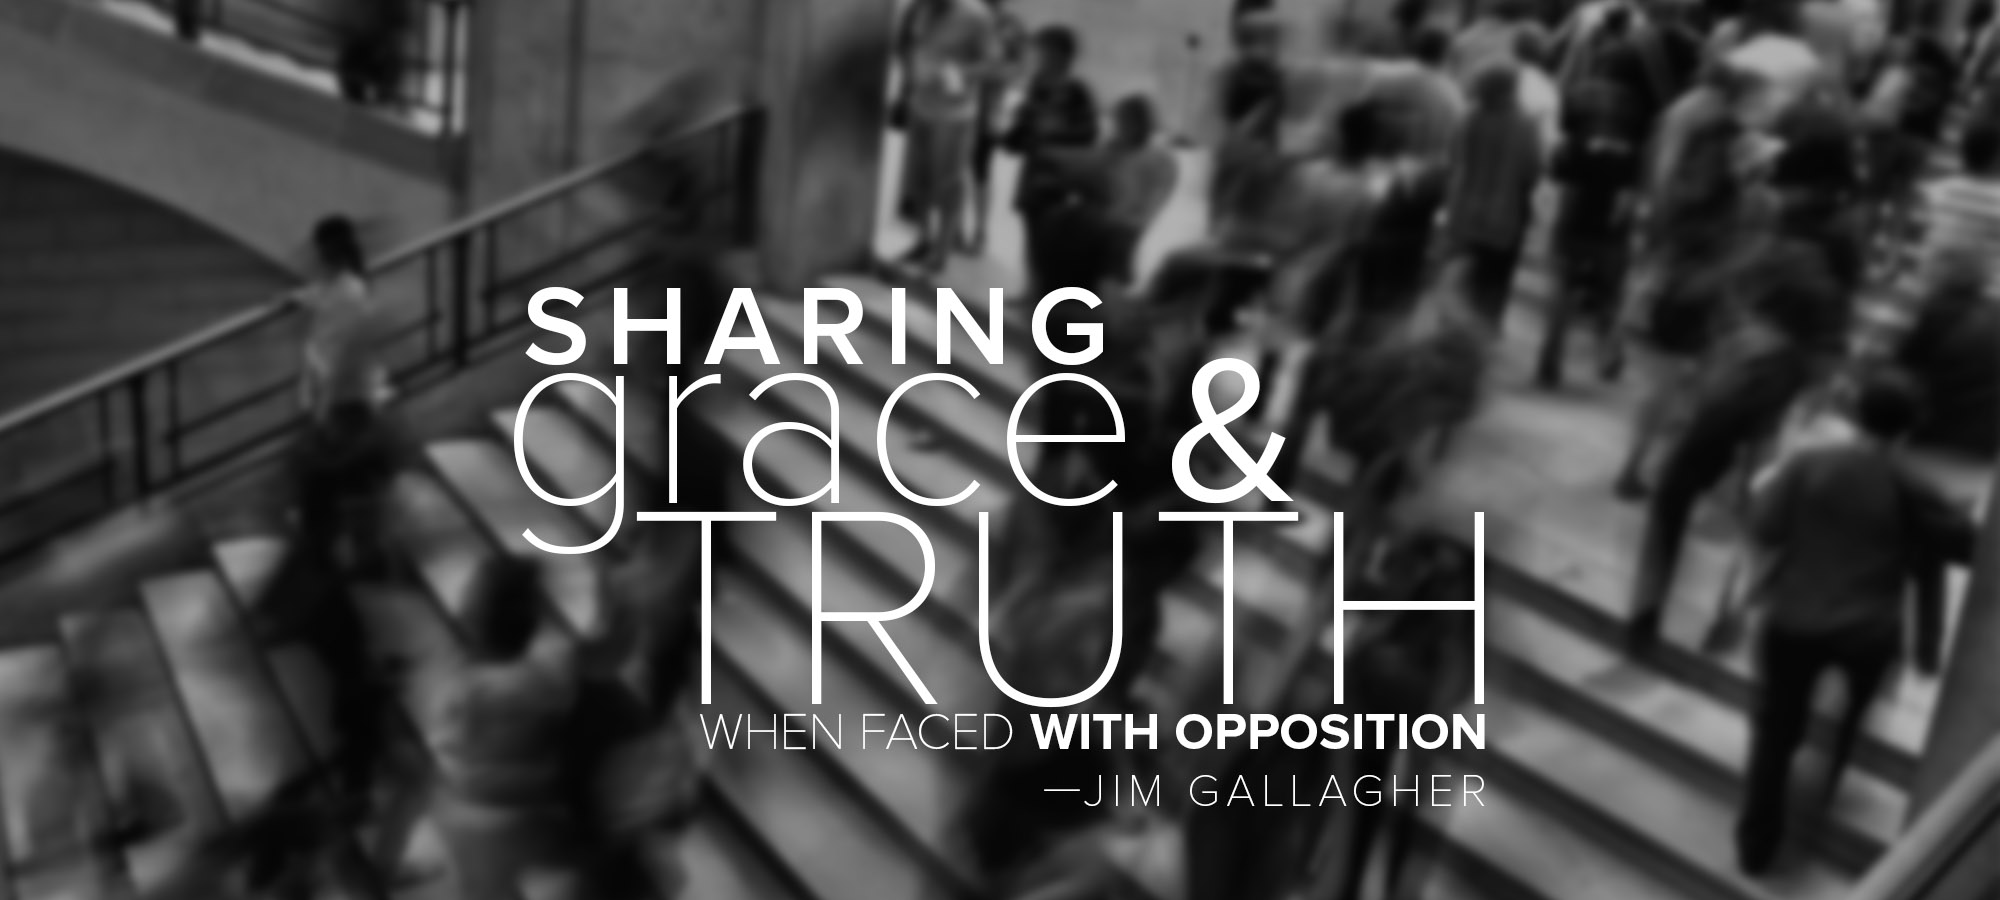 Sharing Grace and Truth When Faced with Opposition